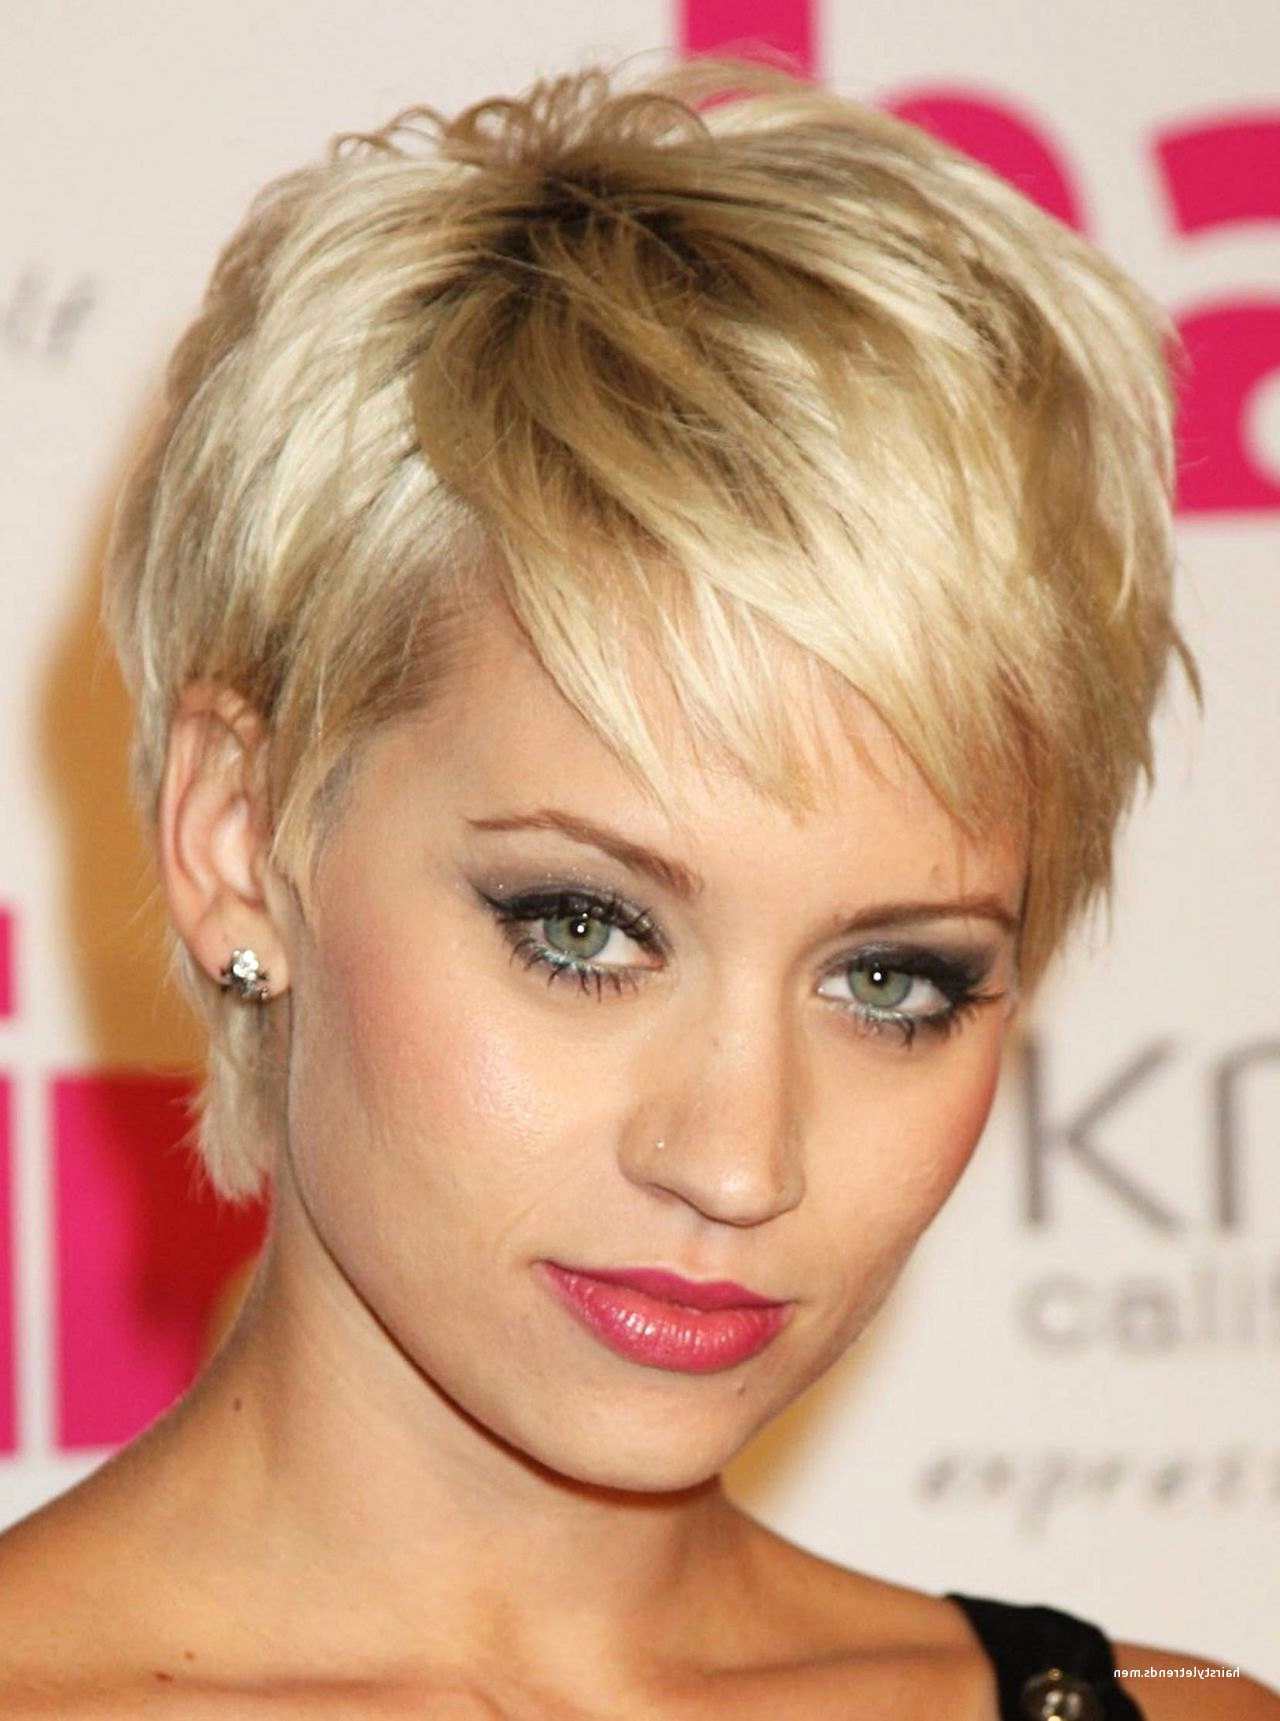 Beautiful Sassy Short Hairstyles For Thick Hair • Hairstyletrends With Regard To Sassy Short Haircuts For Thick Hair (View 18 of 25)